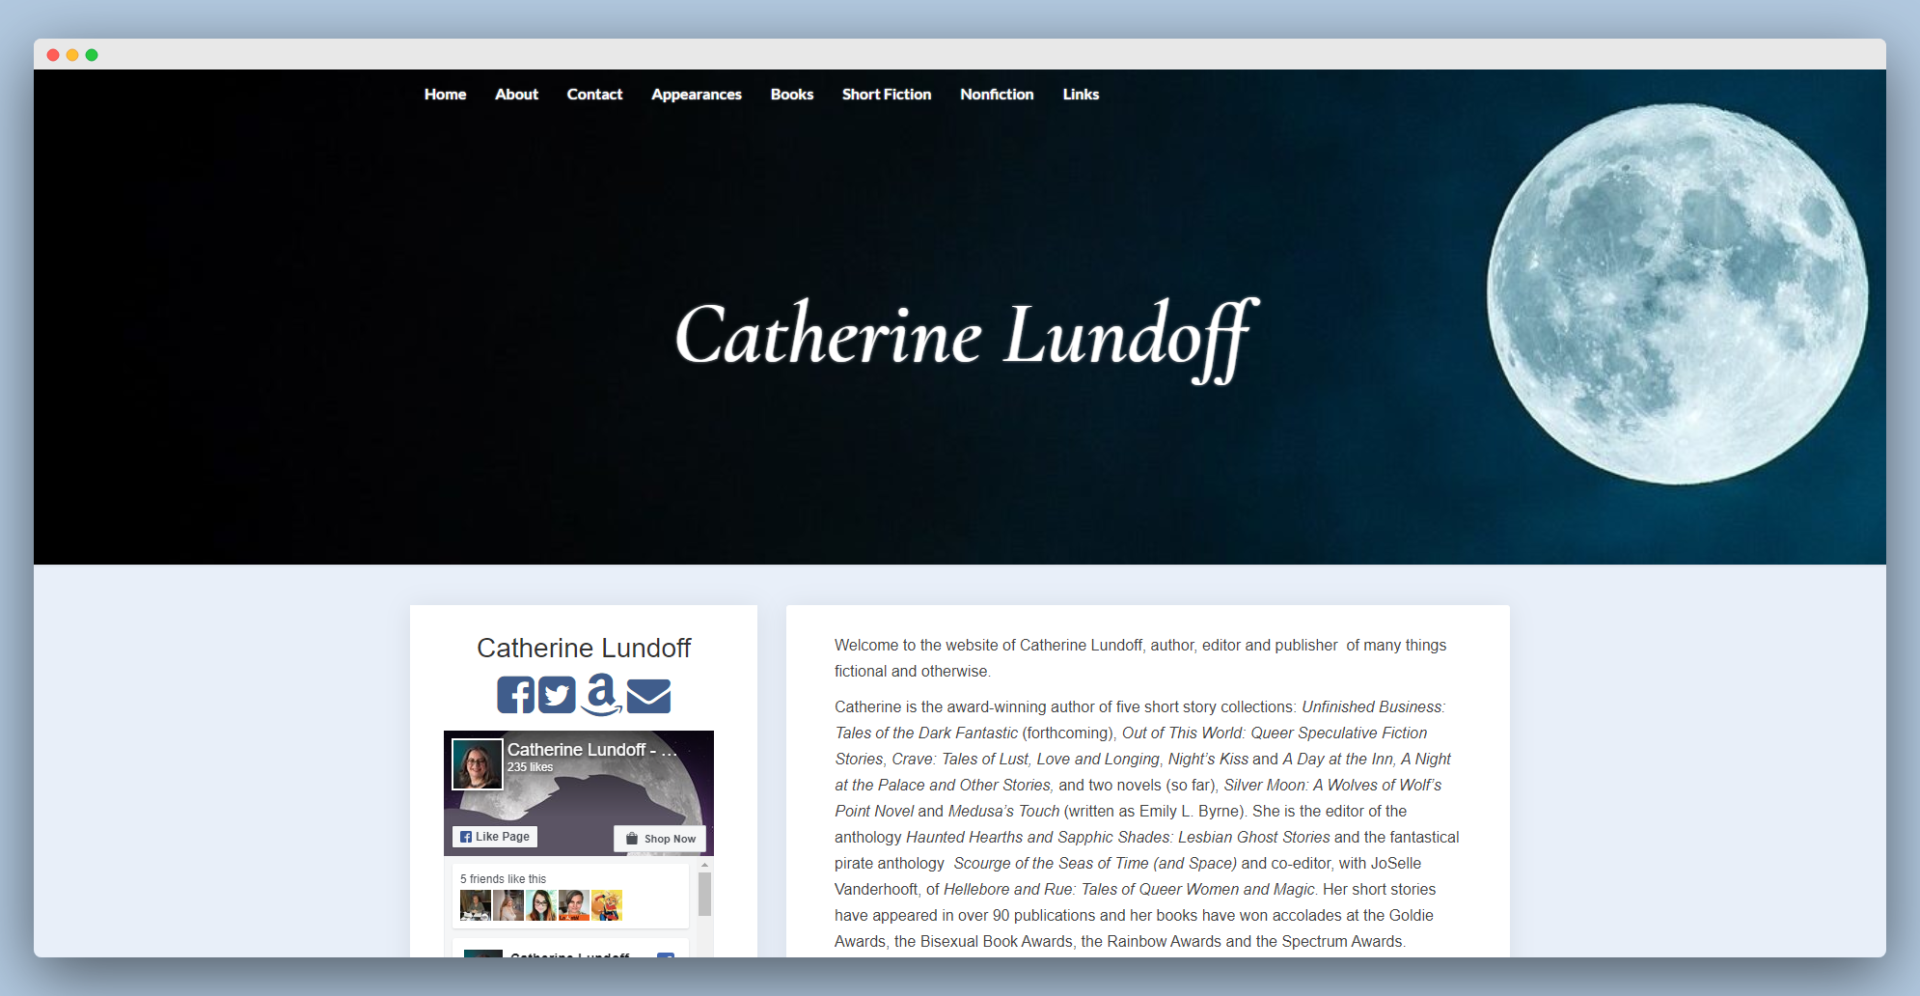 screenshot of Catherine Lundoff's website